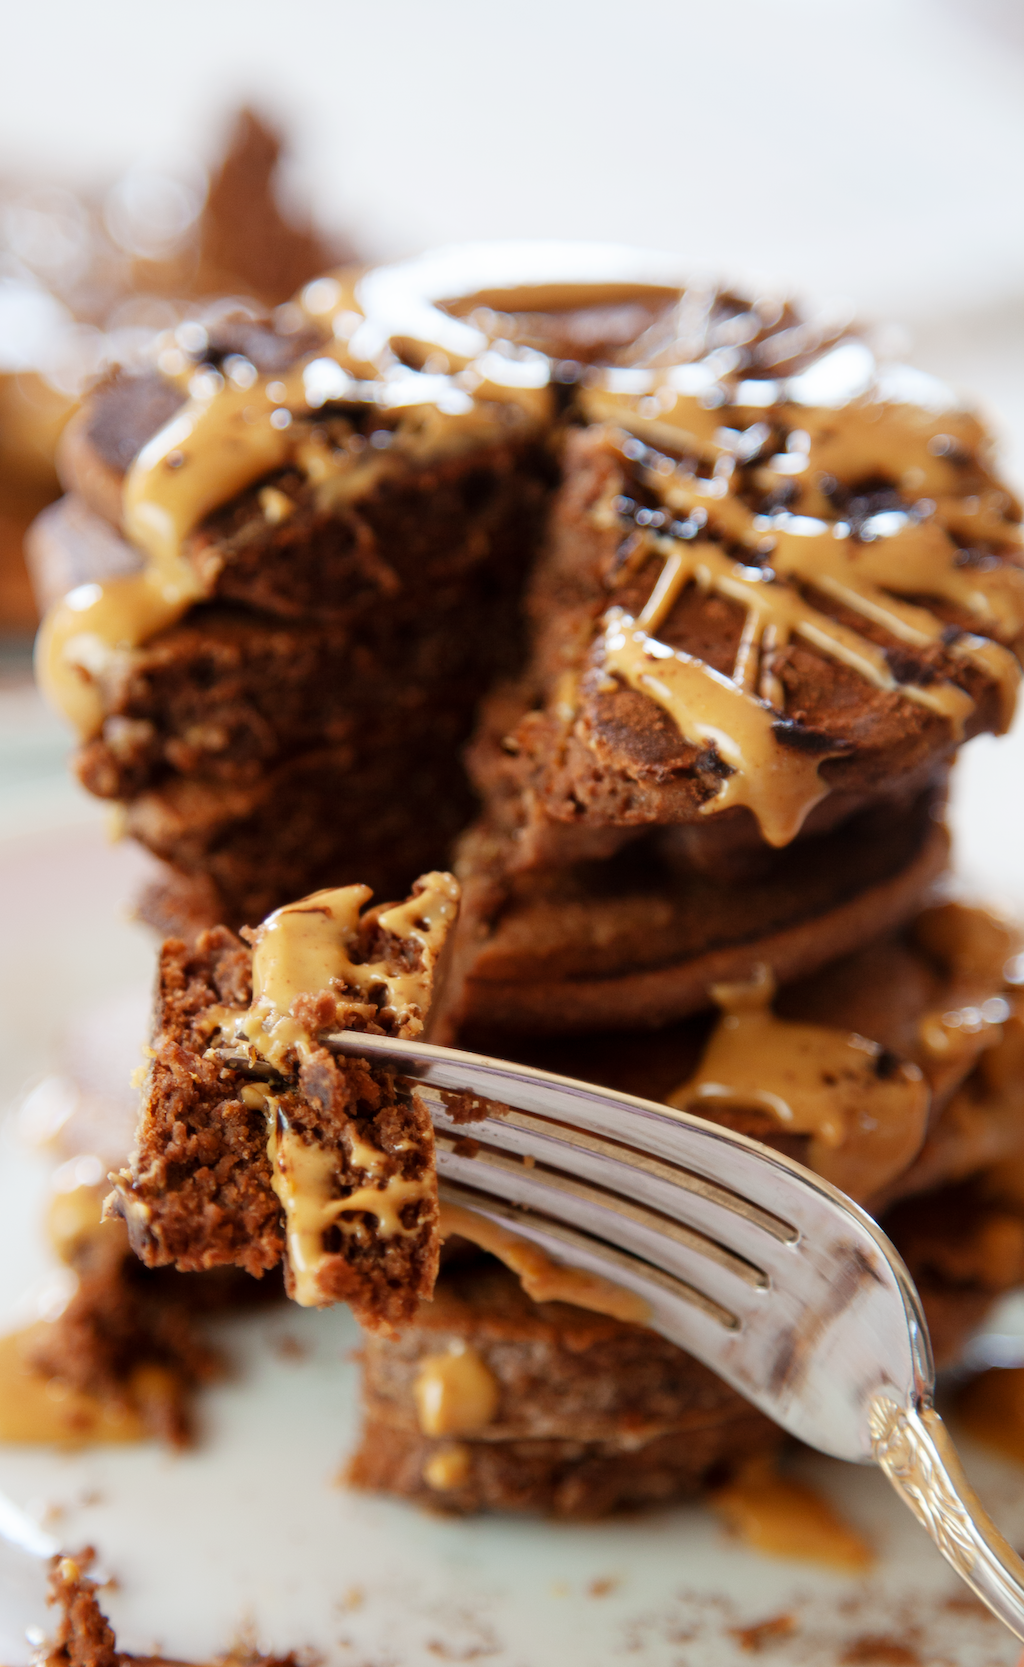 Chocolate Peanut Butter Pancakes - My Southern Sweet Tooth